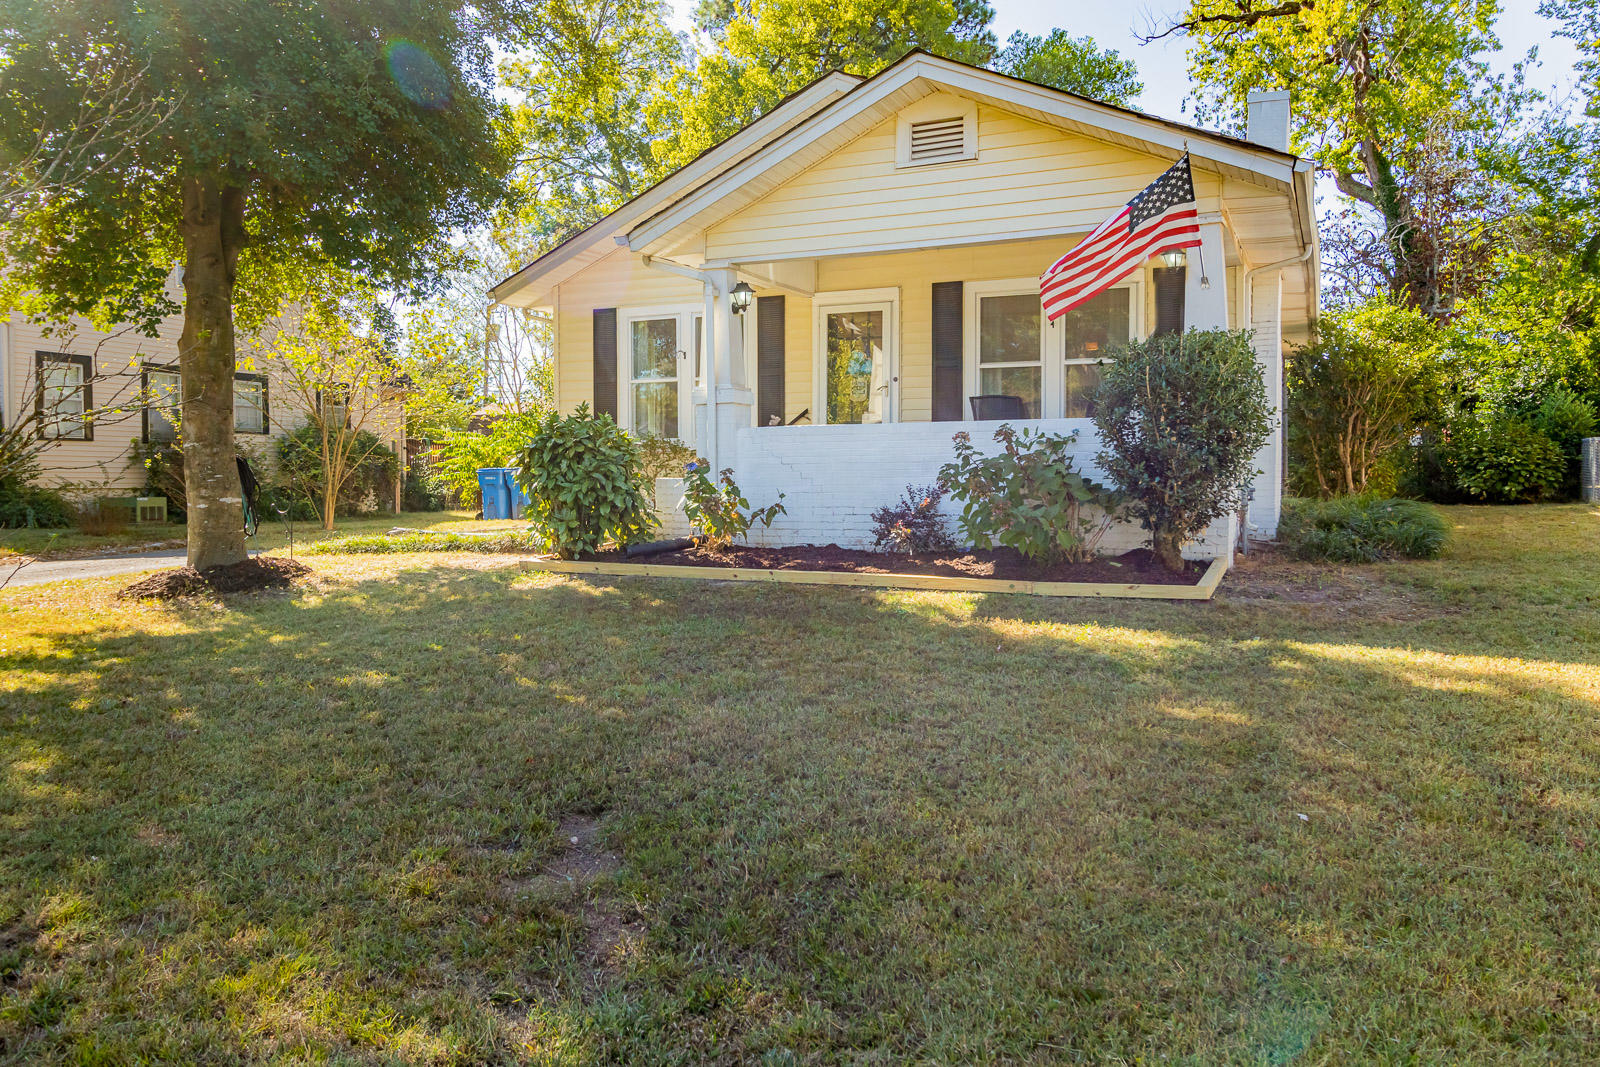 4112  Sunbury  Ave 37411 - One of Chattanooga Homes for Sale